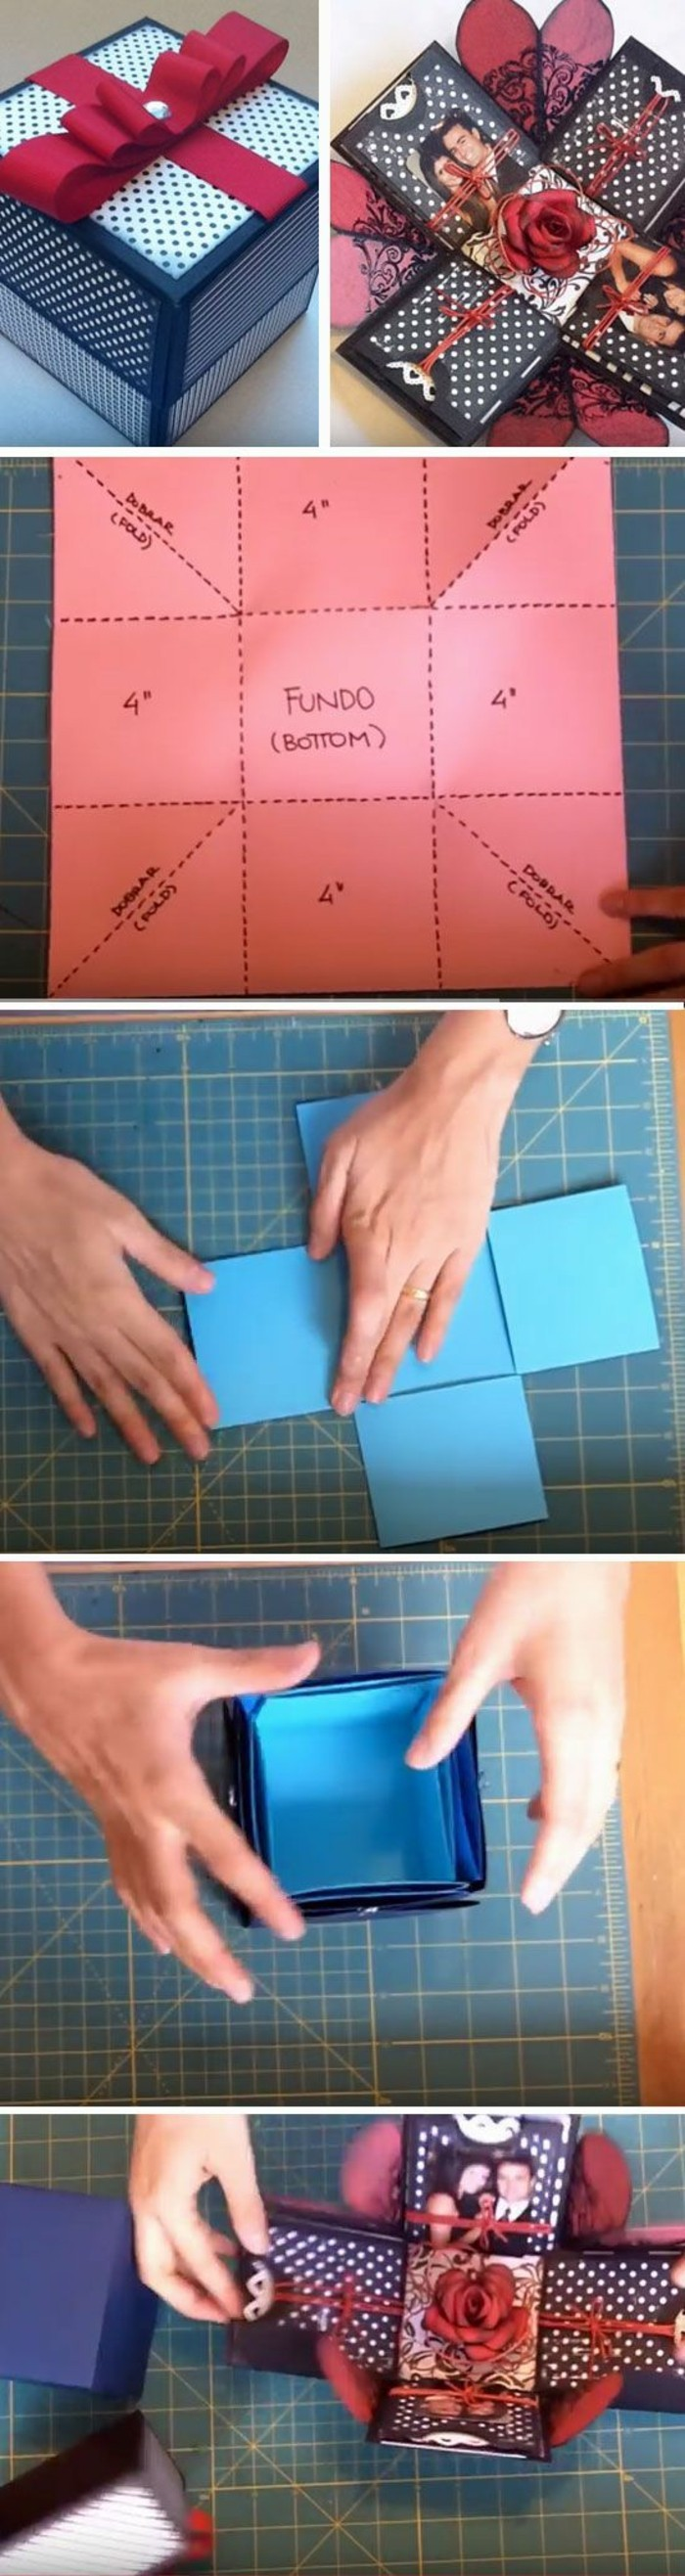 photo box, step by step, diy tutorial, homemade gift ideas, side by side pictures, large red bow